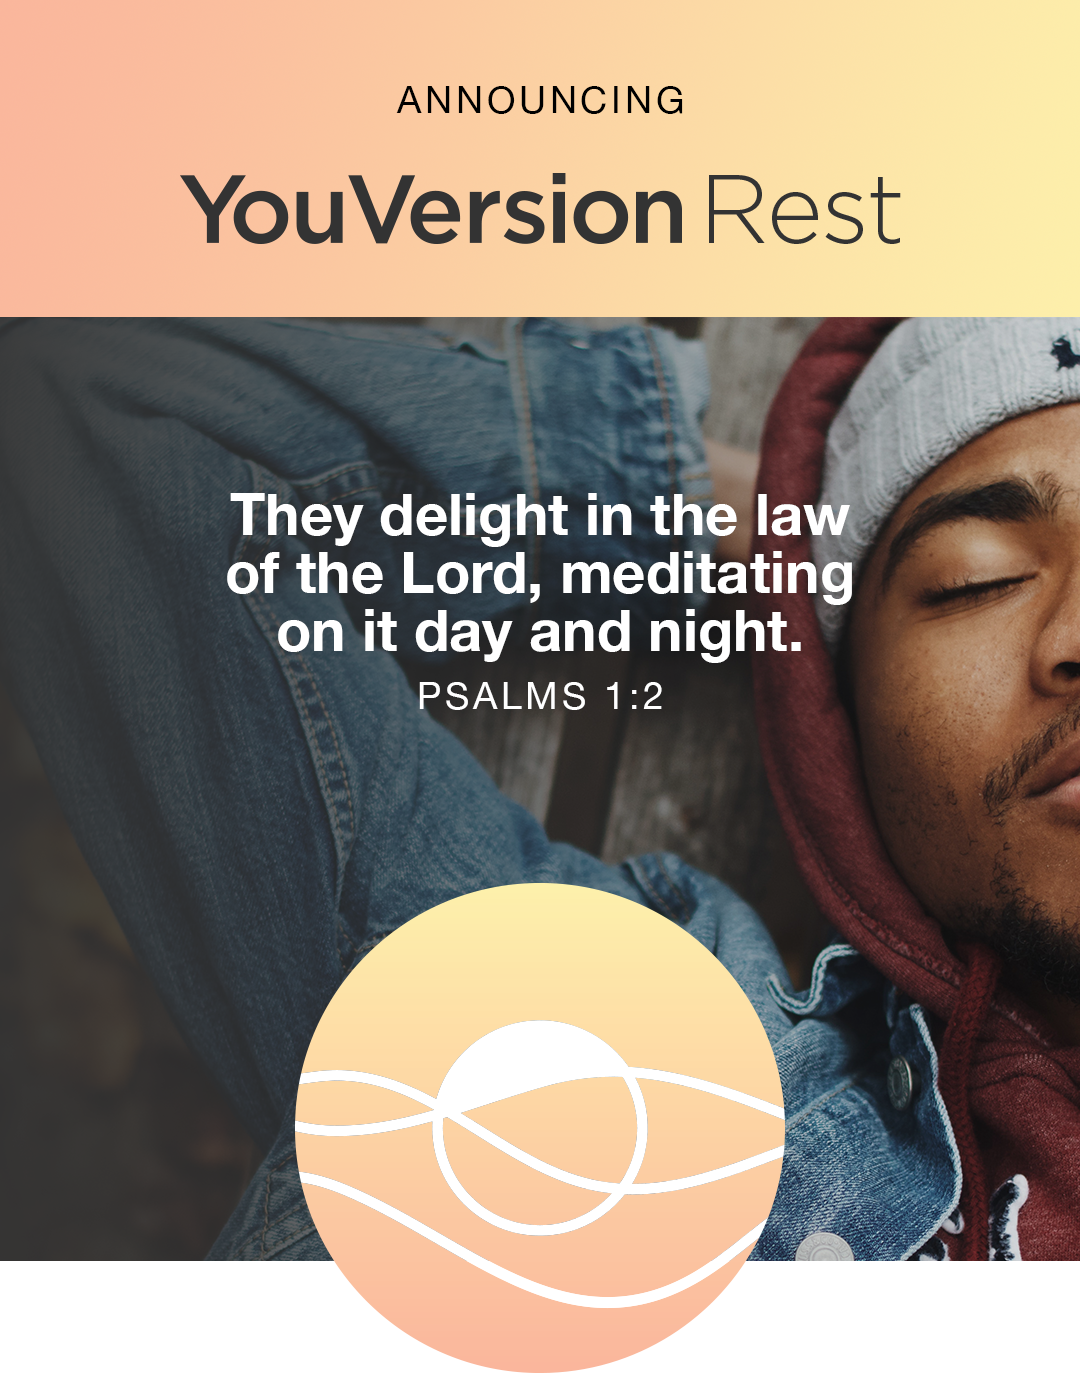 Announcing YouVersion Rest